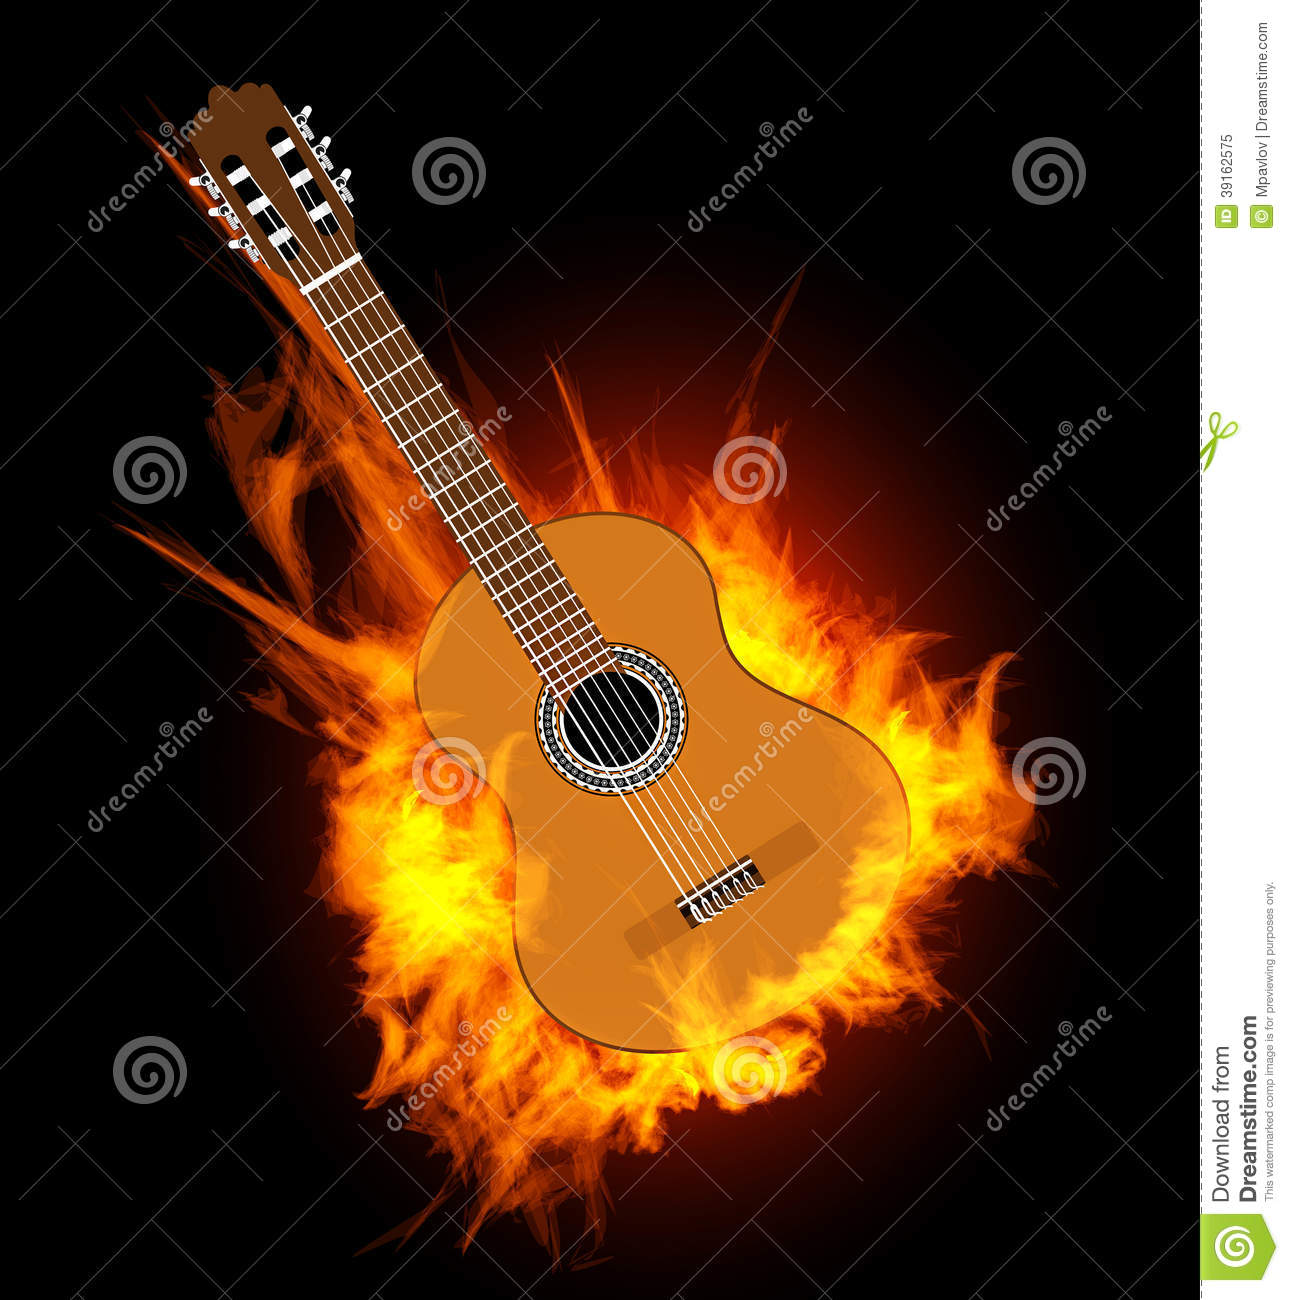 guitar acoustic fire flame - photo #2